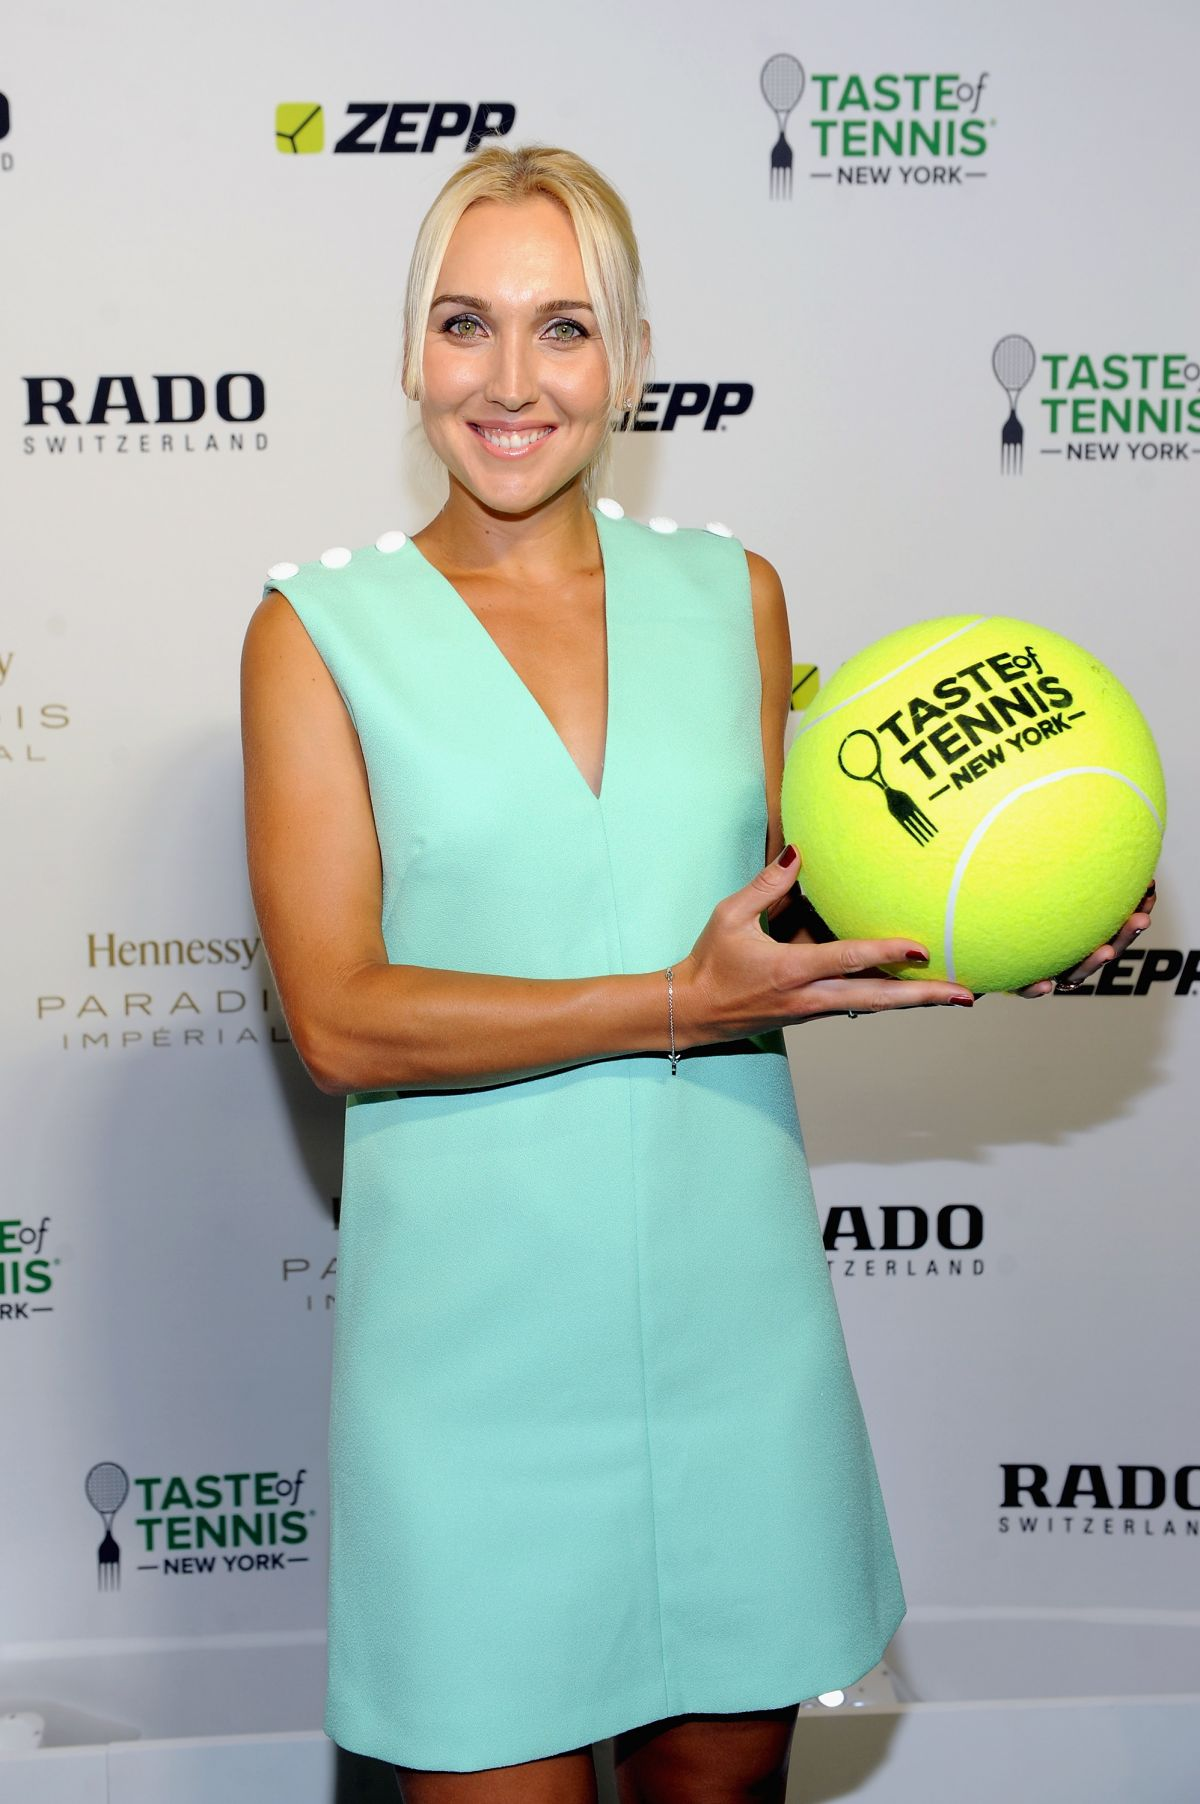 ELENA VESNINA at Taste of Tennis Gala in New York